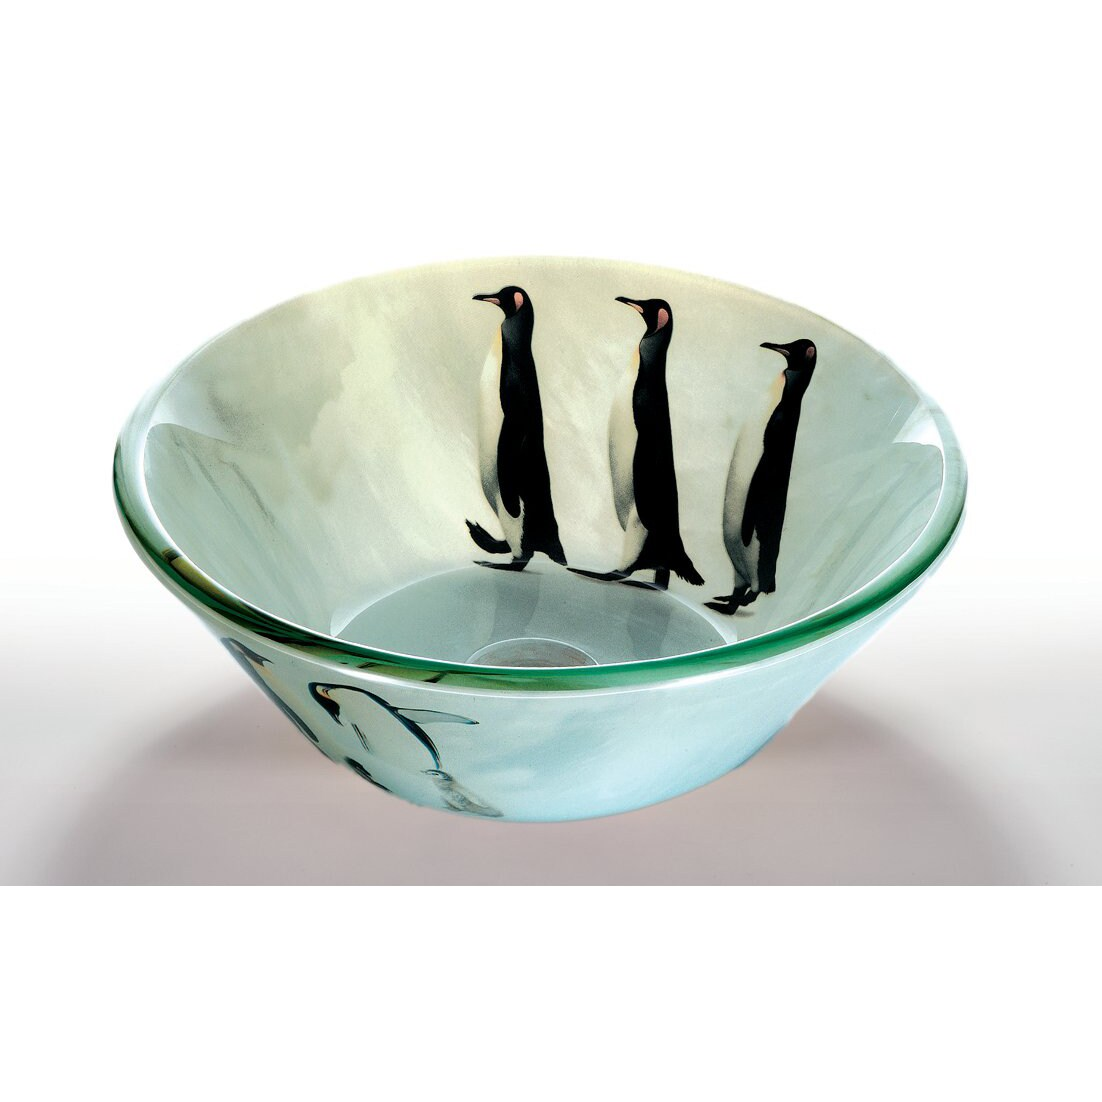 ... Bathroom Vessel Bowl Sink Modern Bathroom Sinks Bathroom Bowl Sink